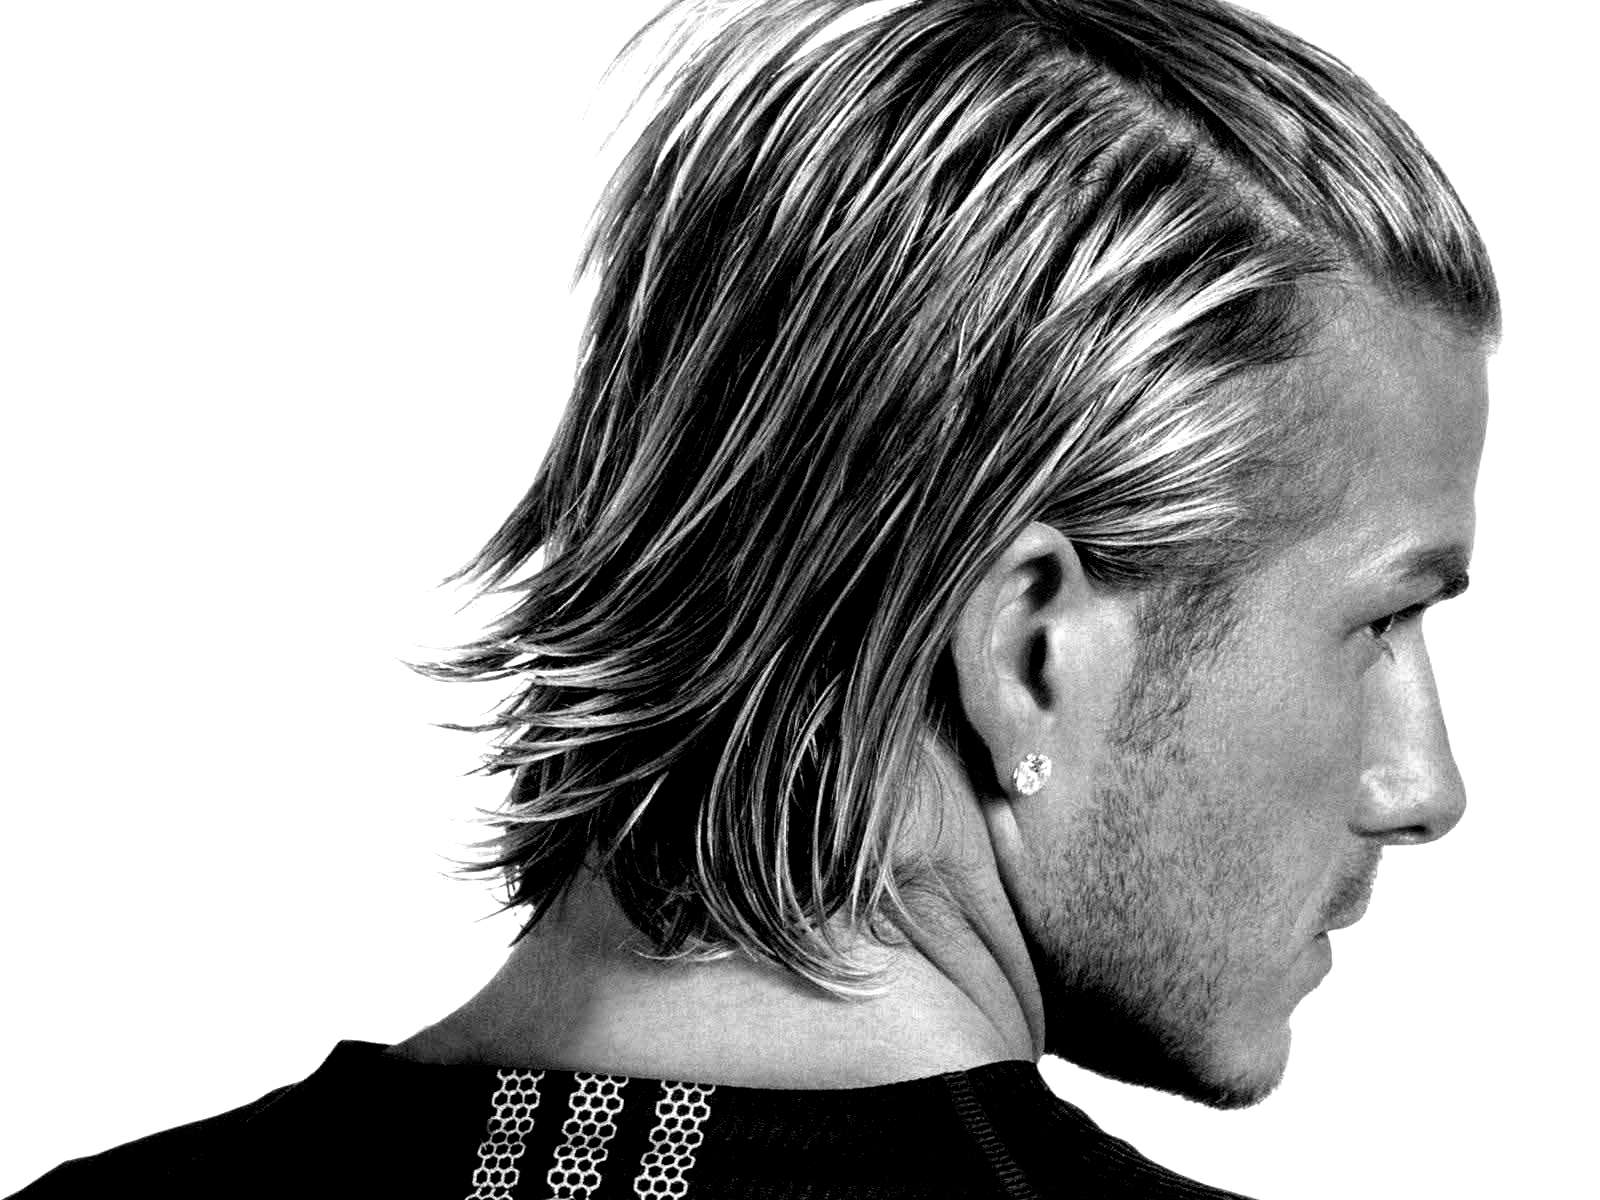 David Beckham new hairstyle black and white Photography